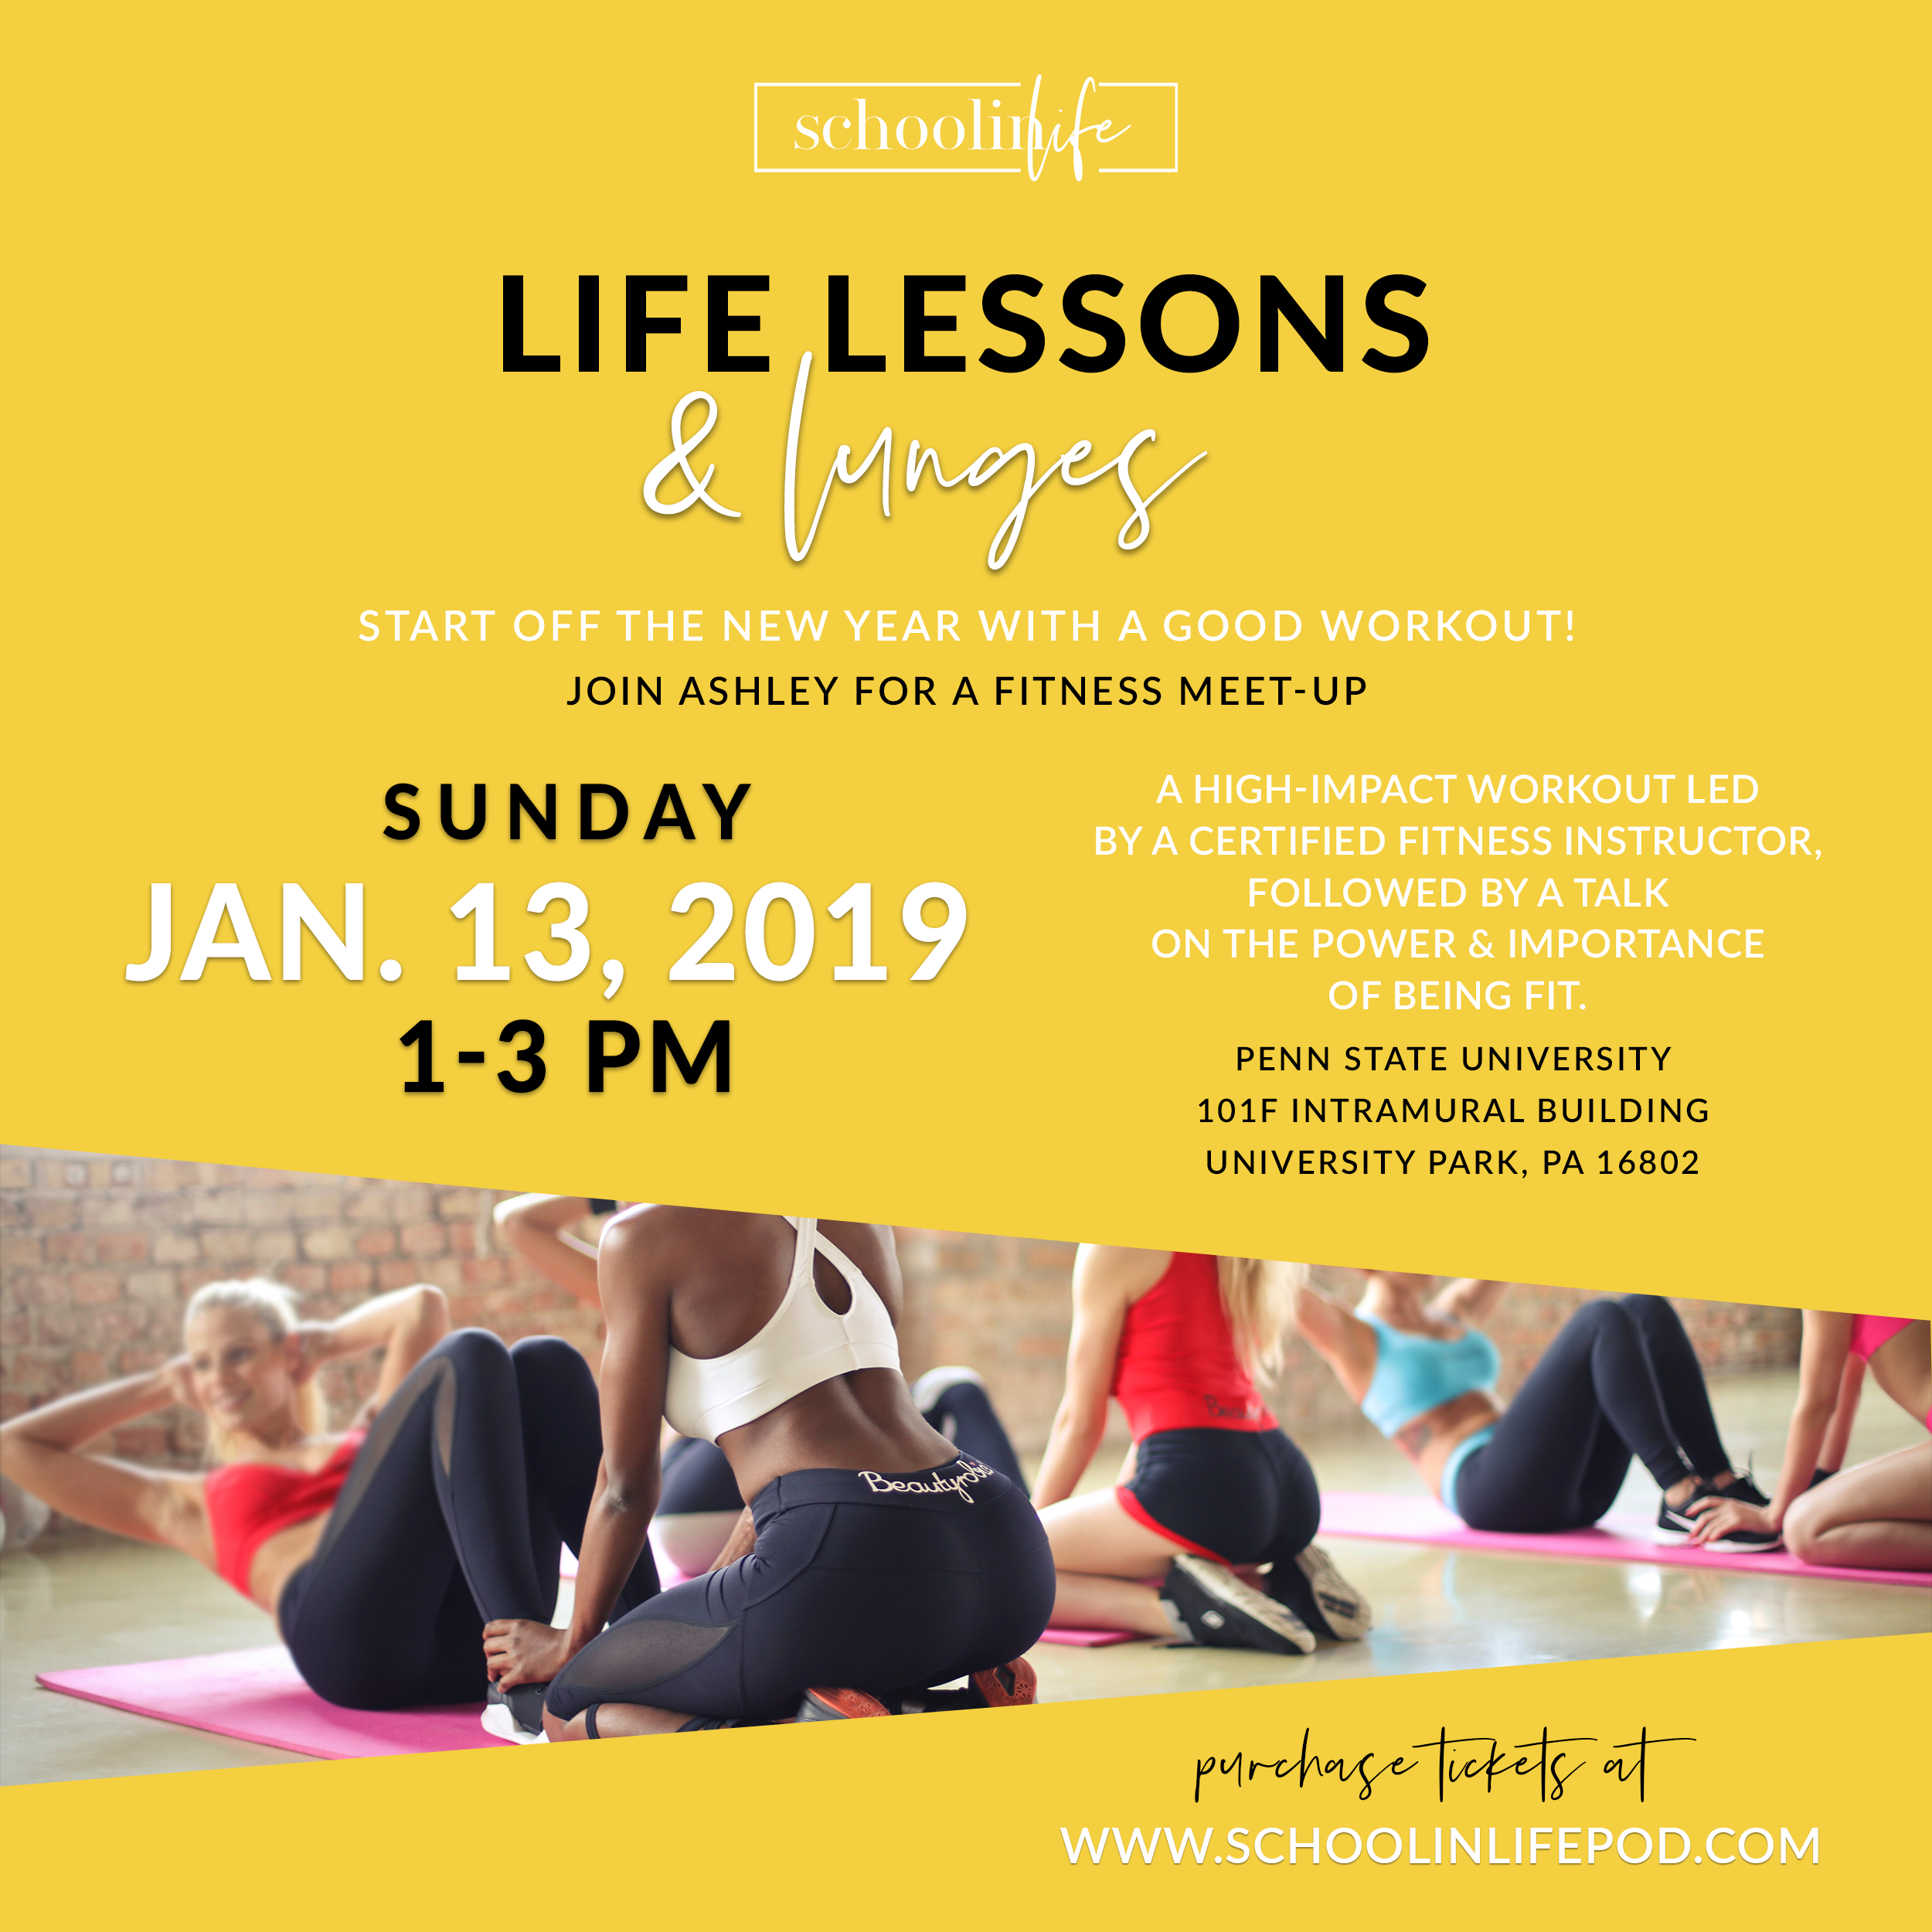 life-lessons-lunges-event-flyer.png